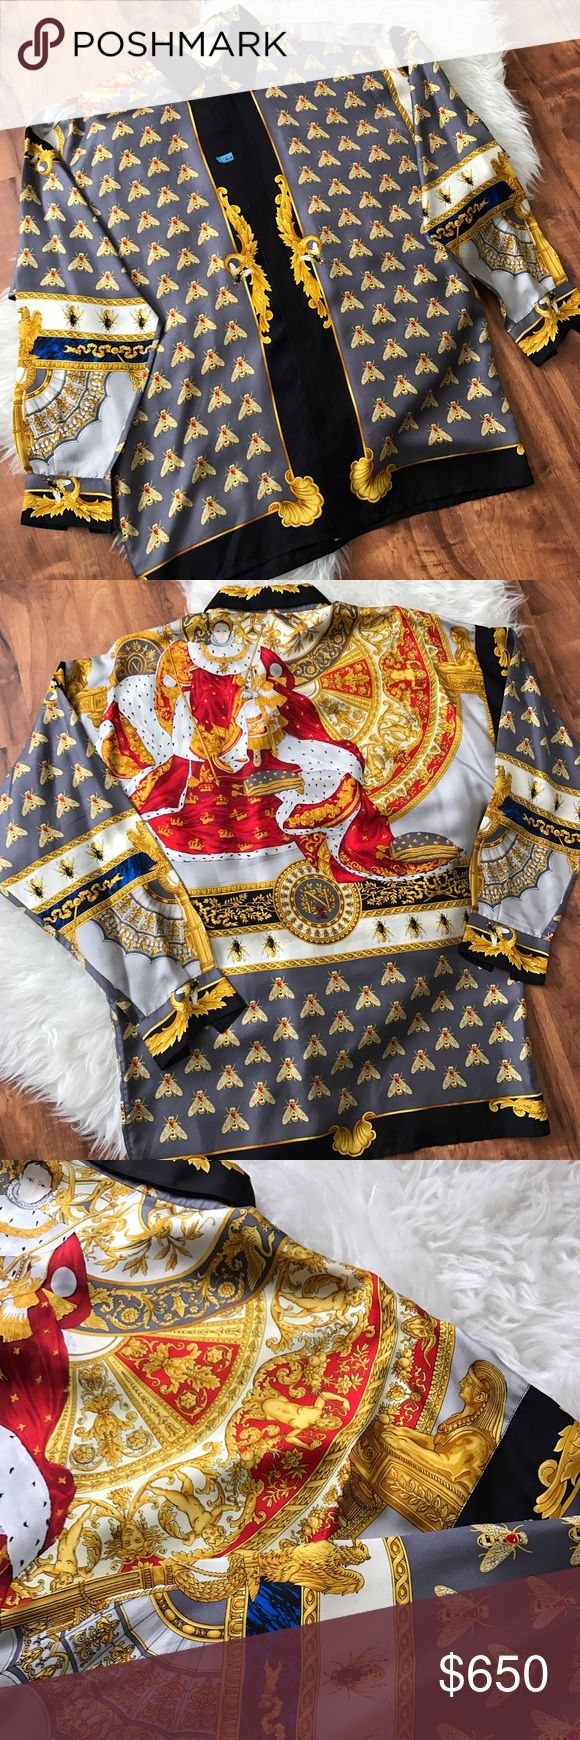 Authentic Gianni Versace silk shirt. Authentic Gianni Versace Men's King Cesar silk shirt. Versace Shirts